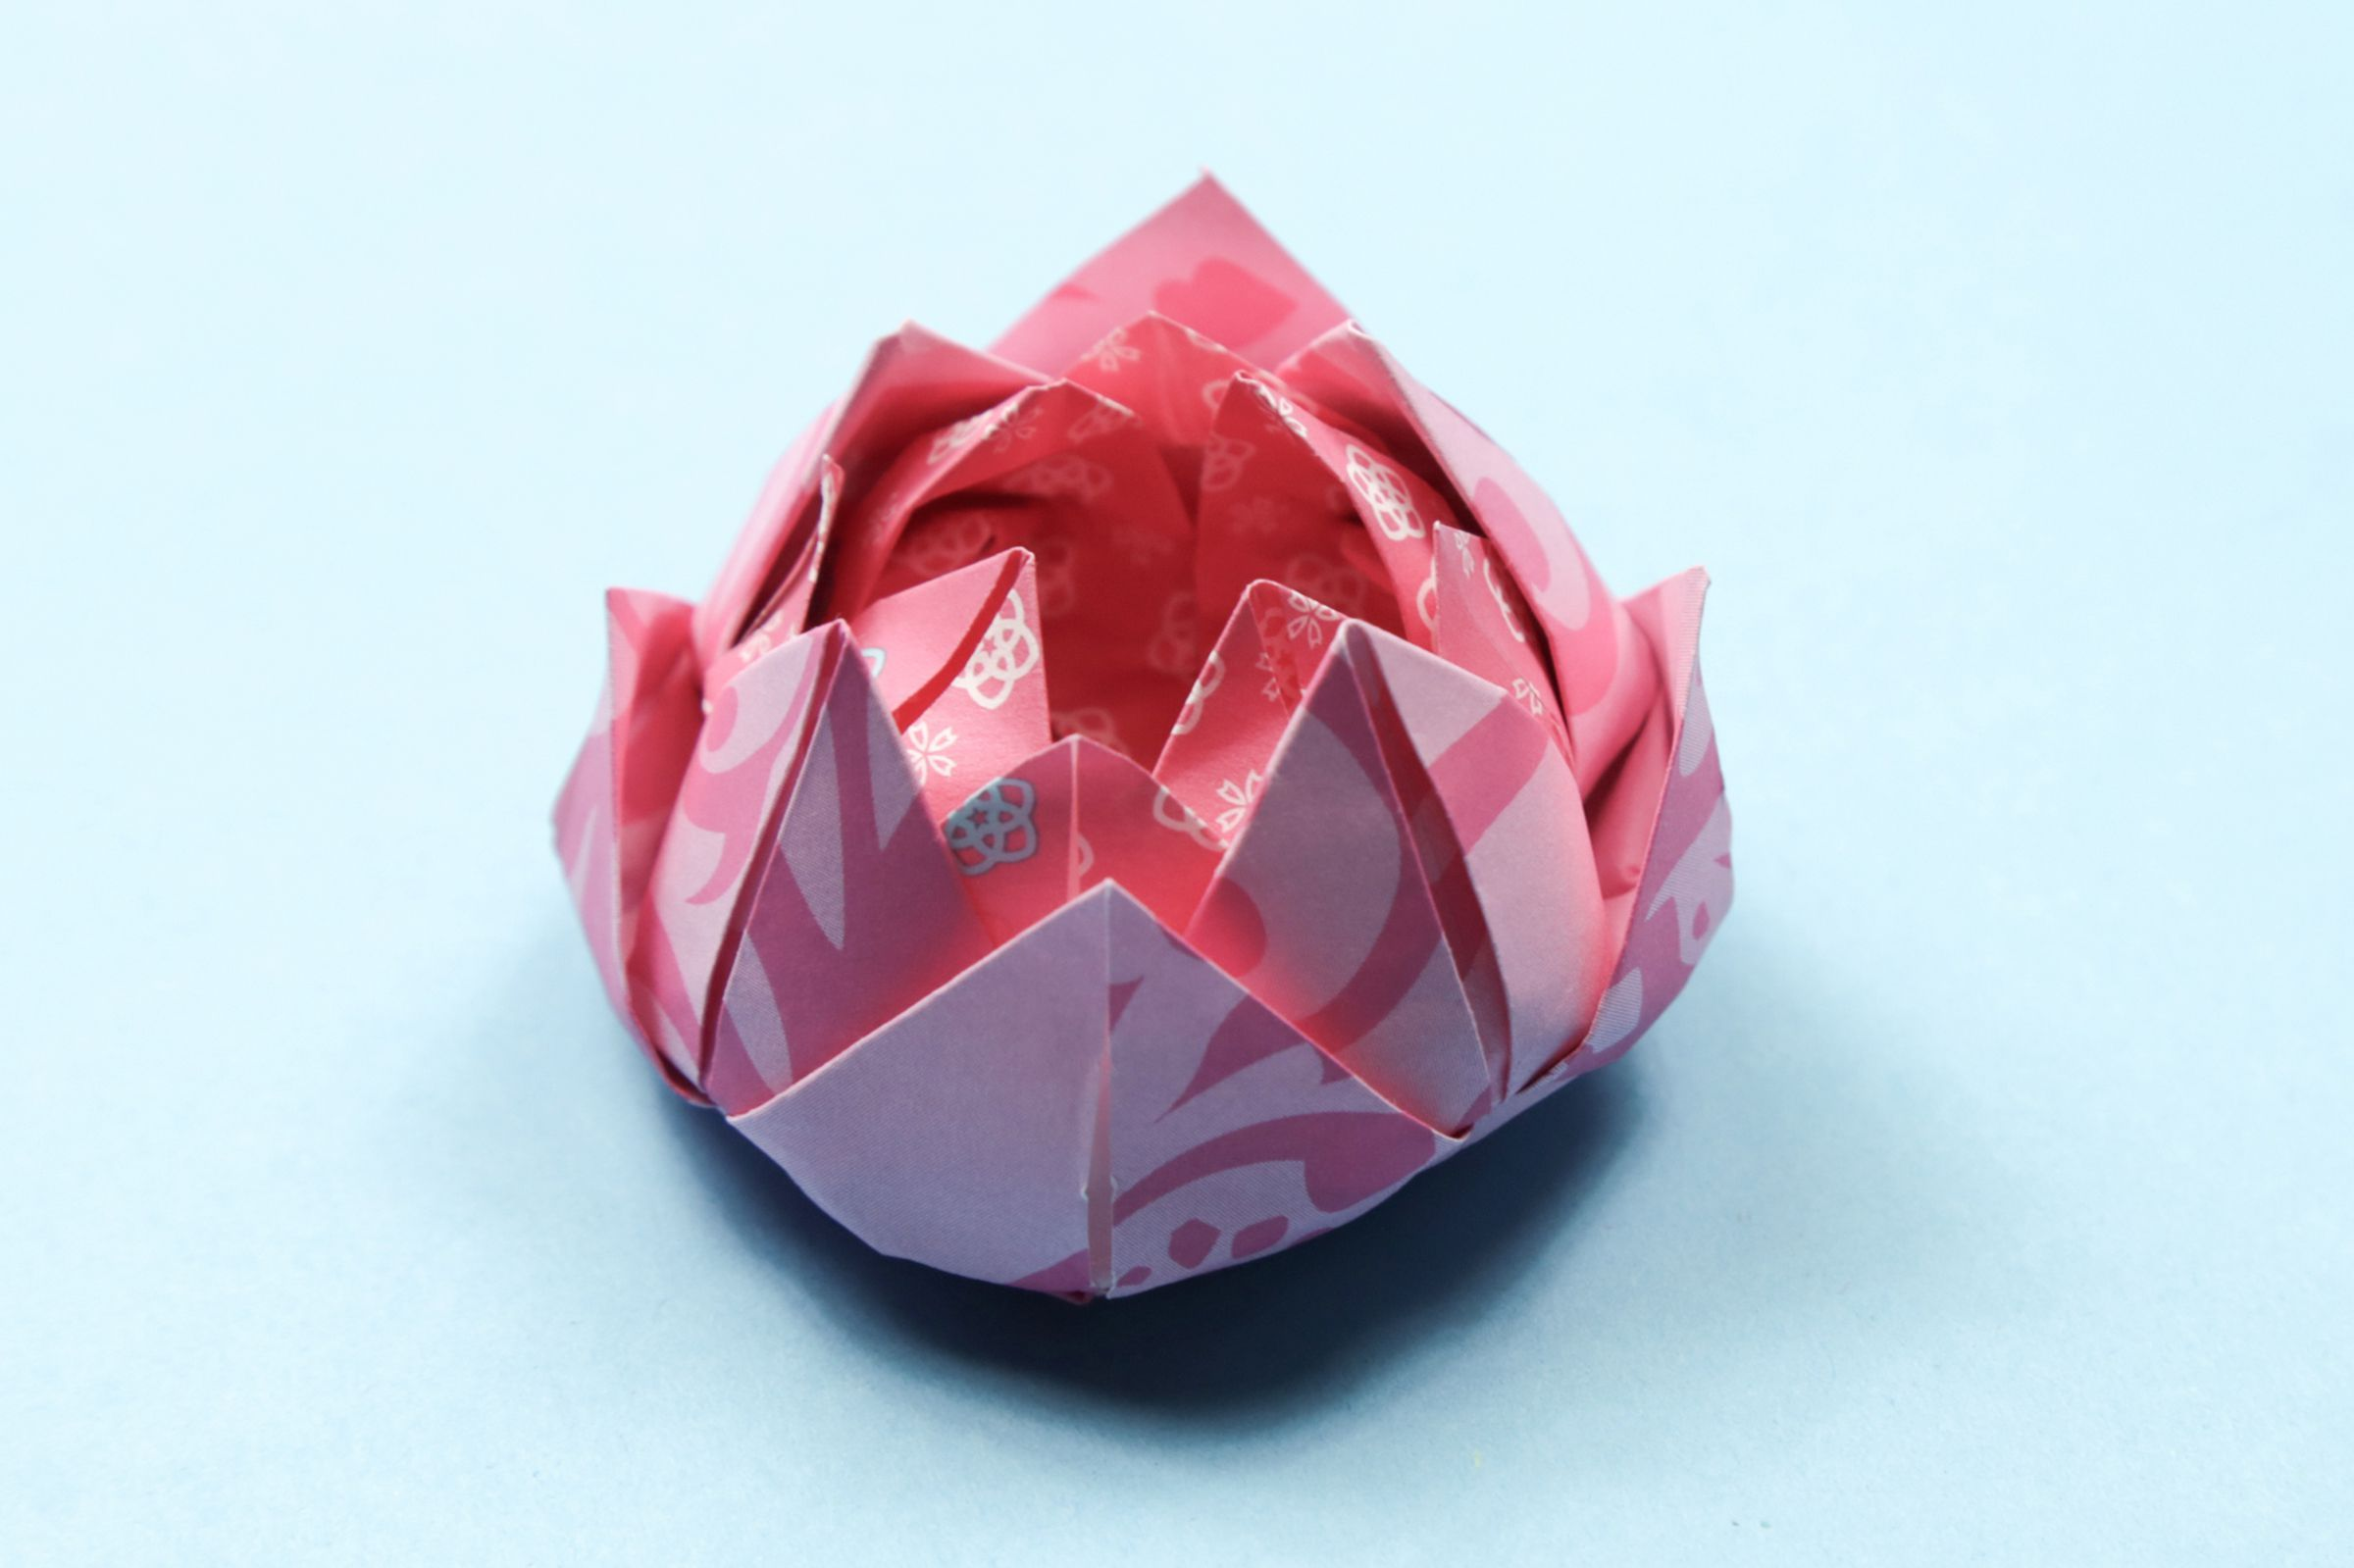 Easy Origami Lotus Tutorial Origami Lotus Flower Paper Origami Flowers Origami Easy